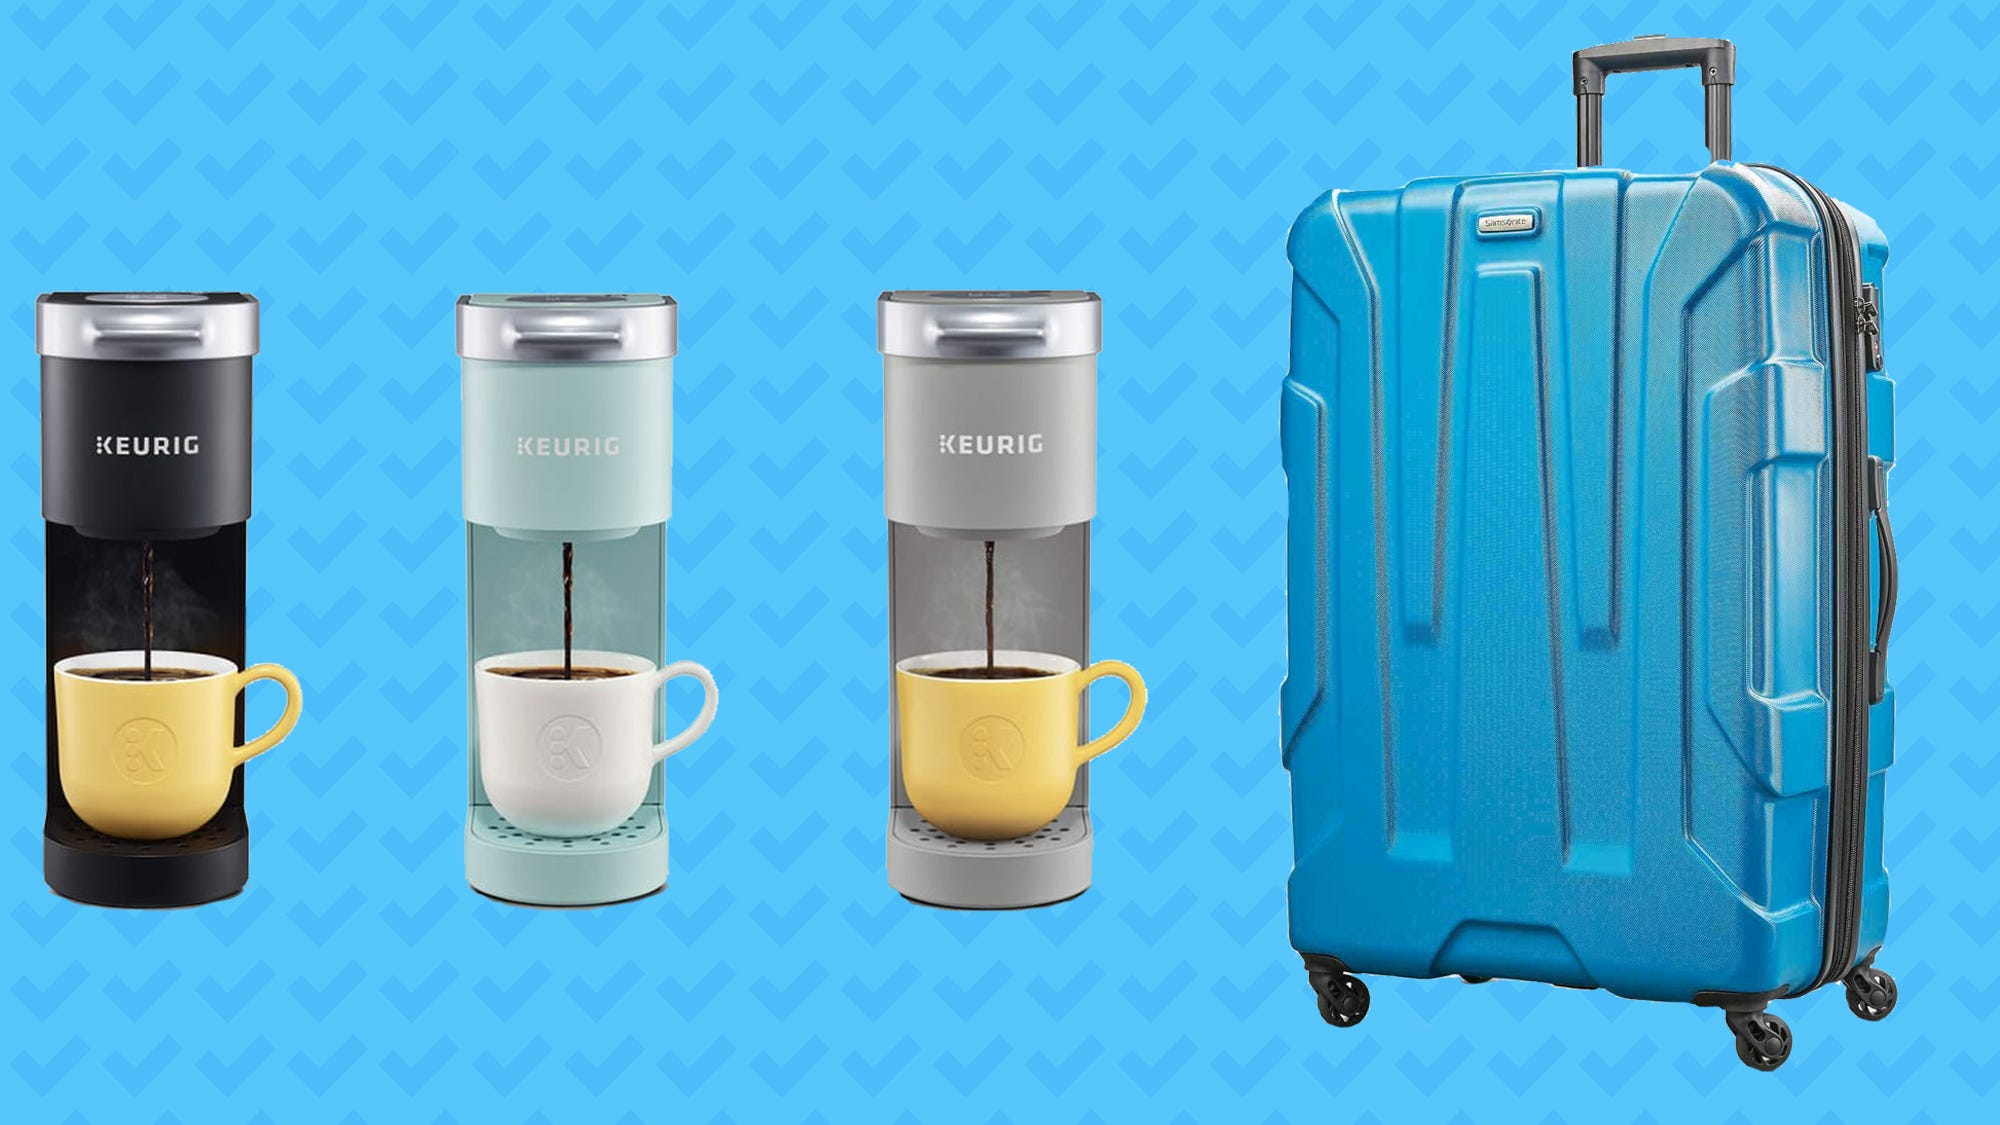 Score discounts on Samsonite Luggage, Casper pillows